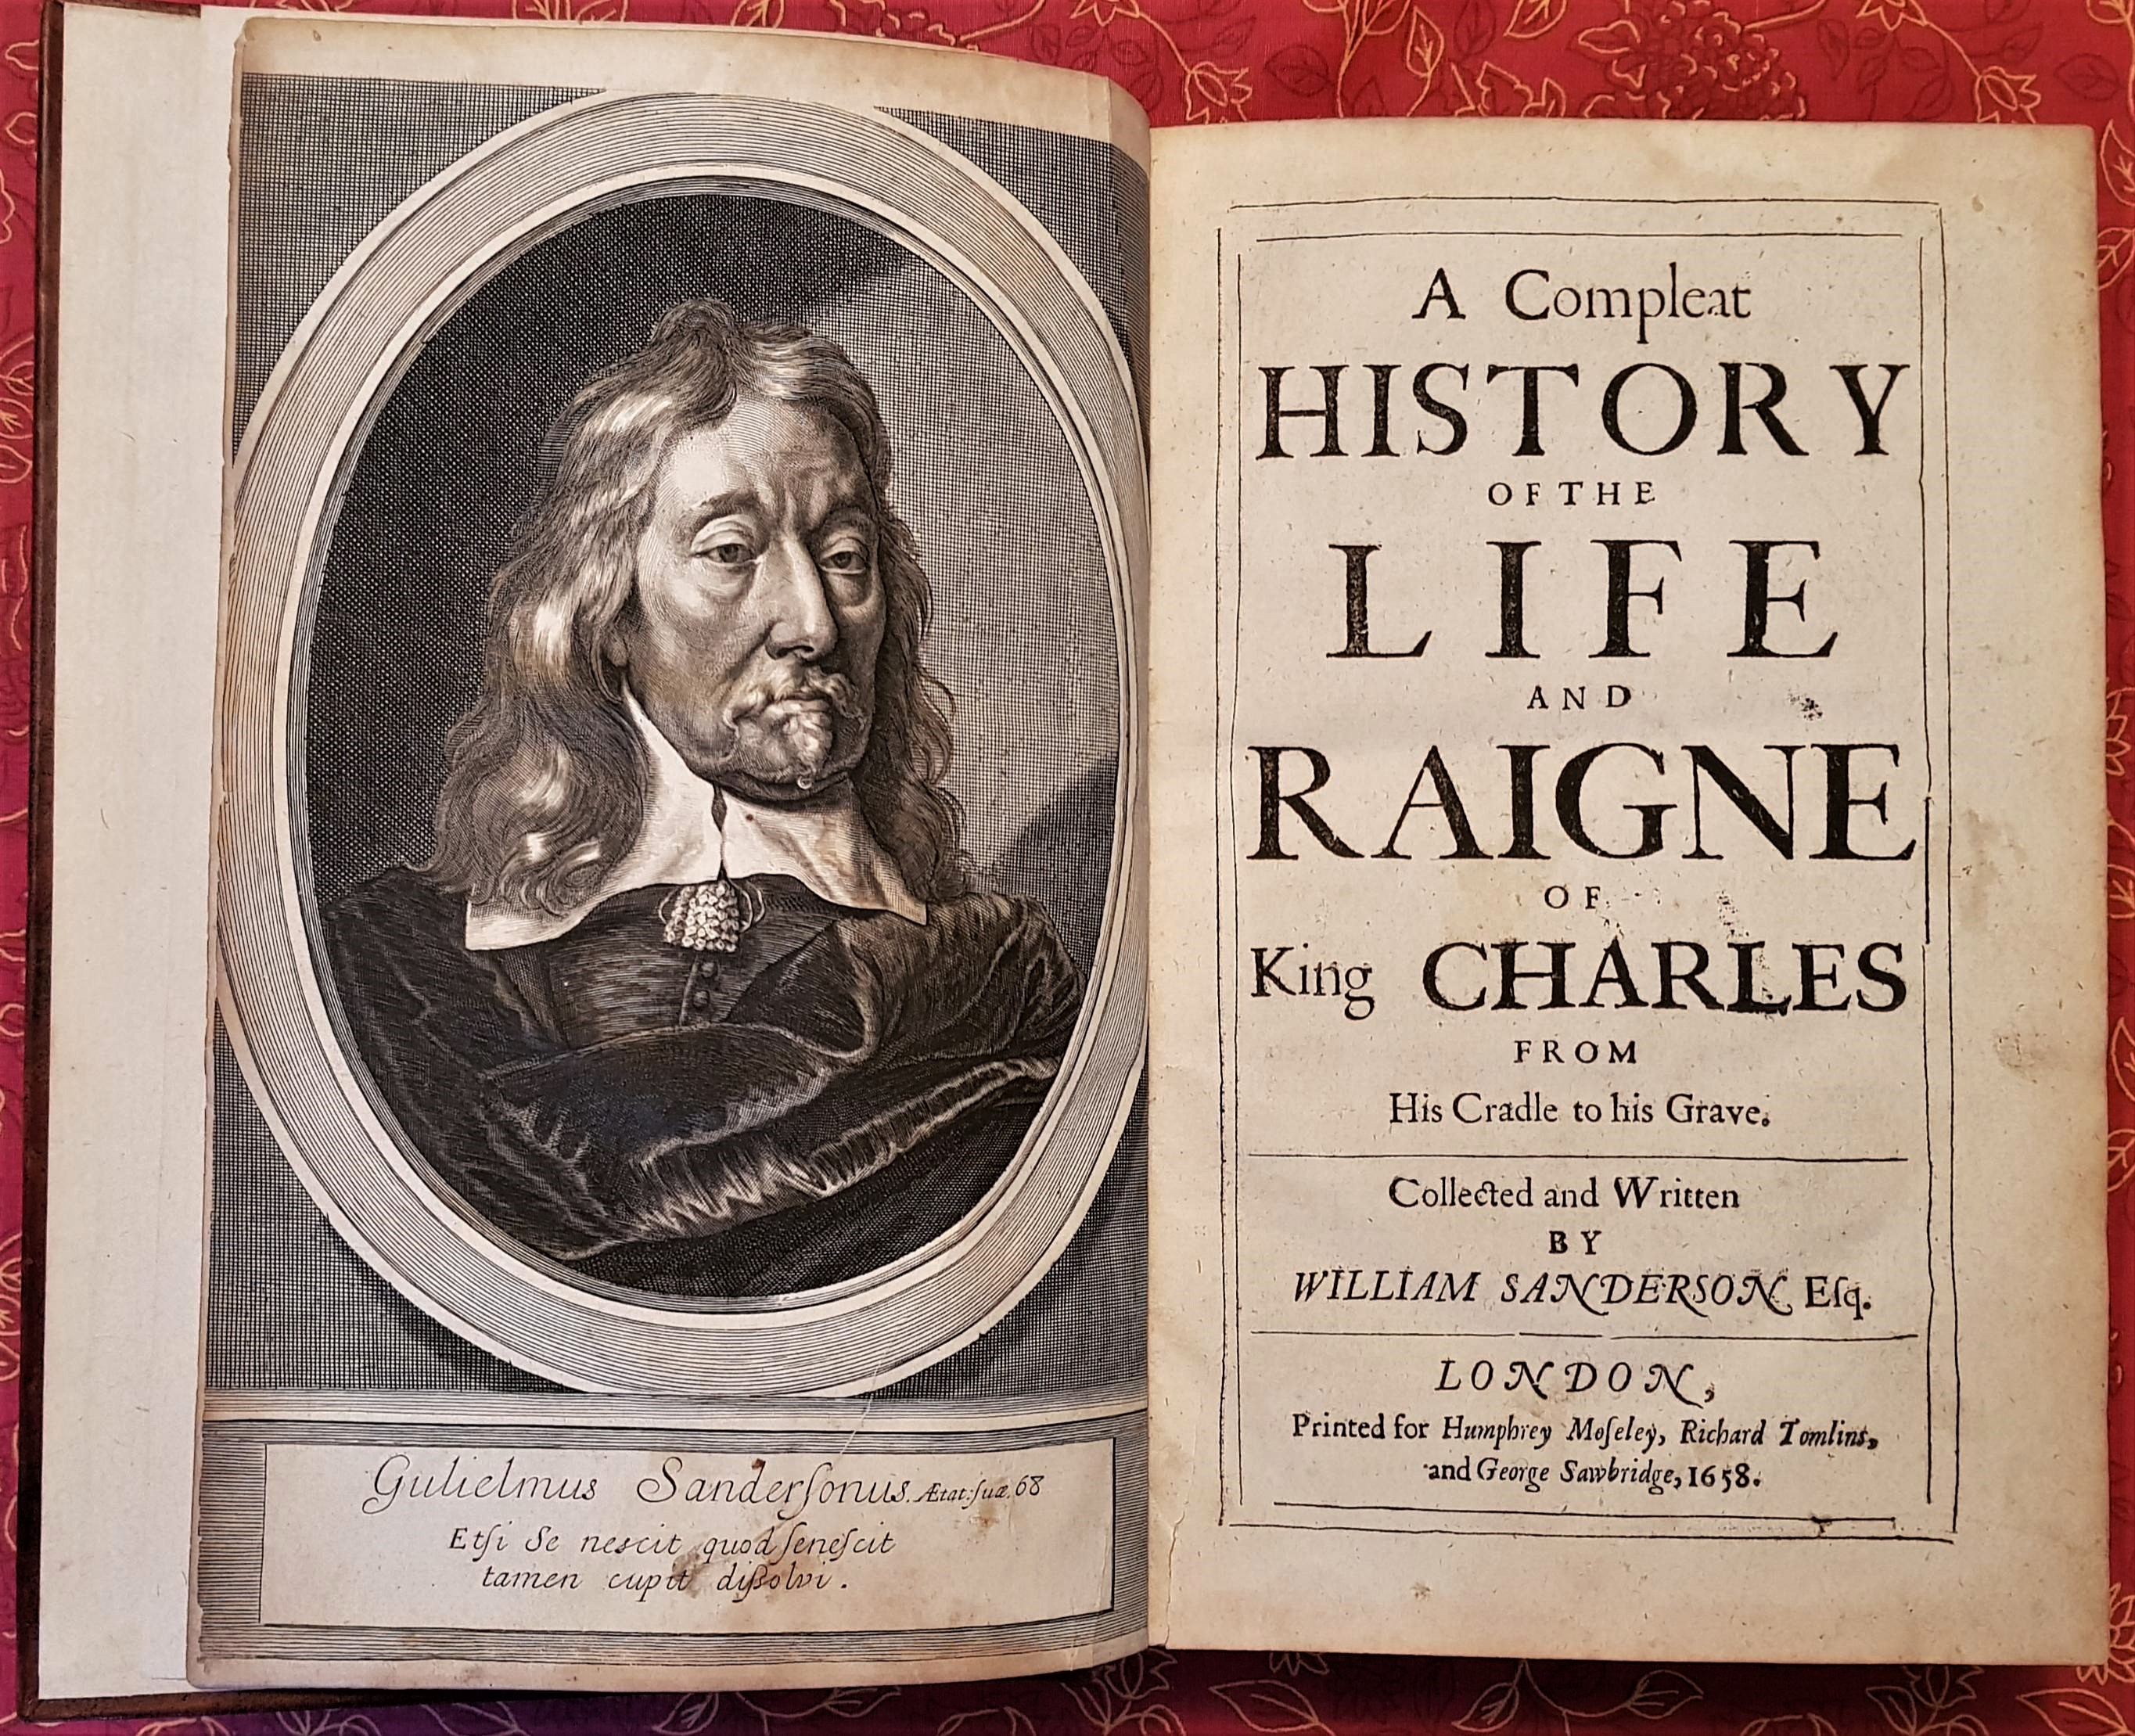 Image for A Compleat History Of The Life And Raigne Of King Charles From His Cradle To His Grave. Collected And Written By William Sanderson Esq.